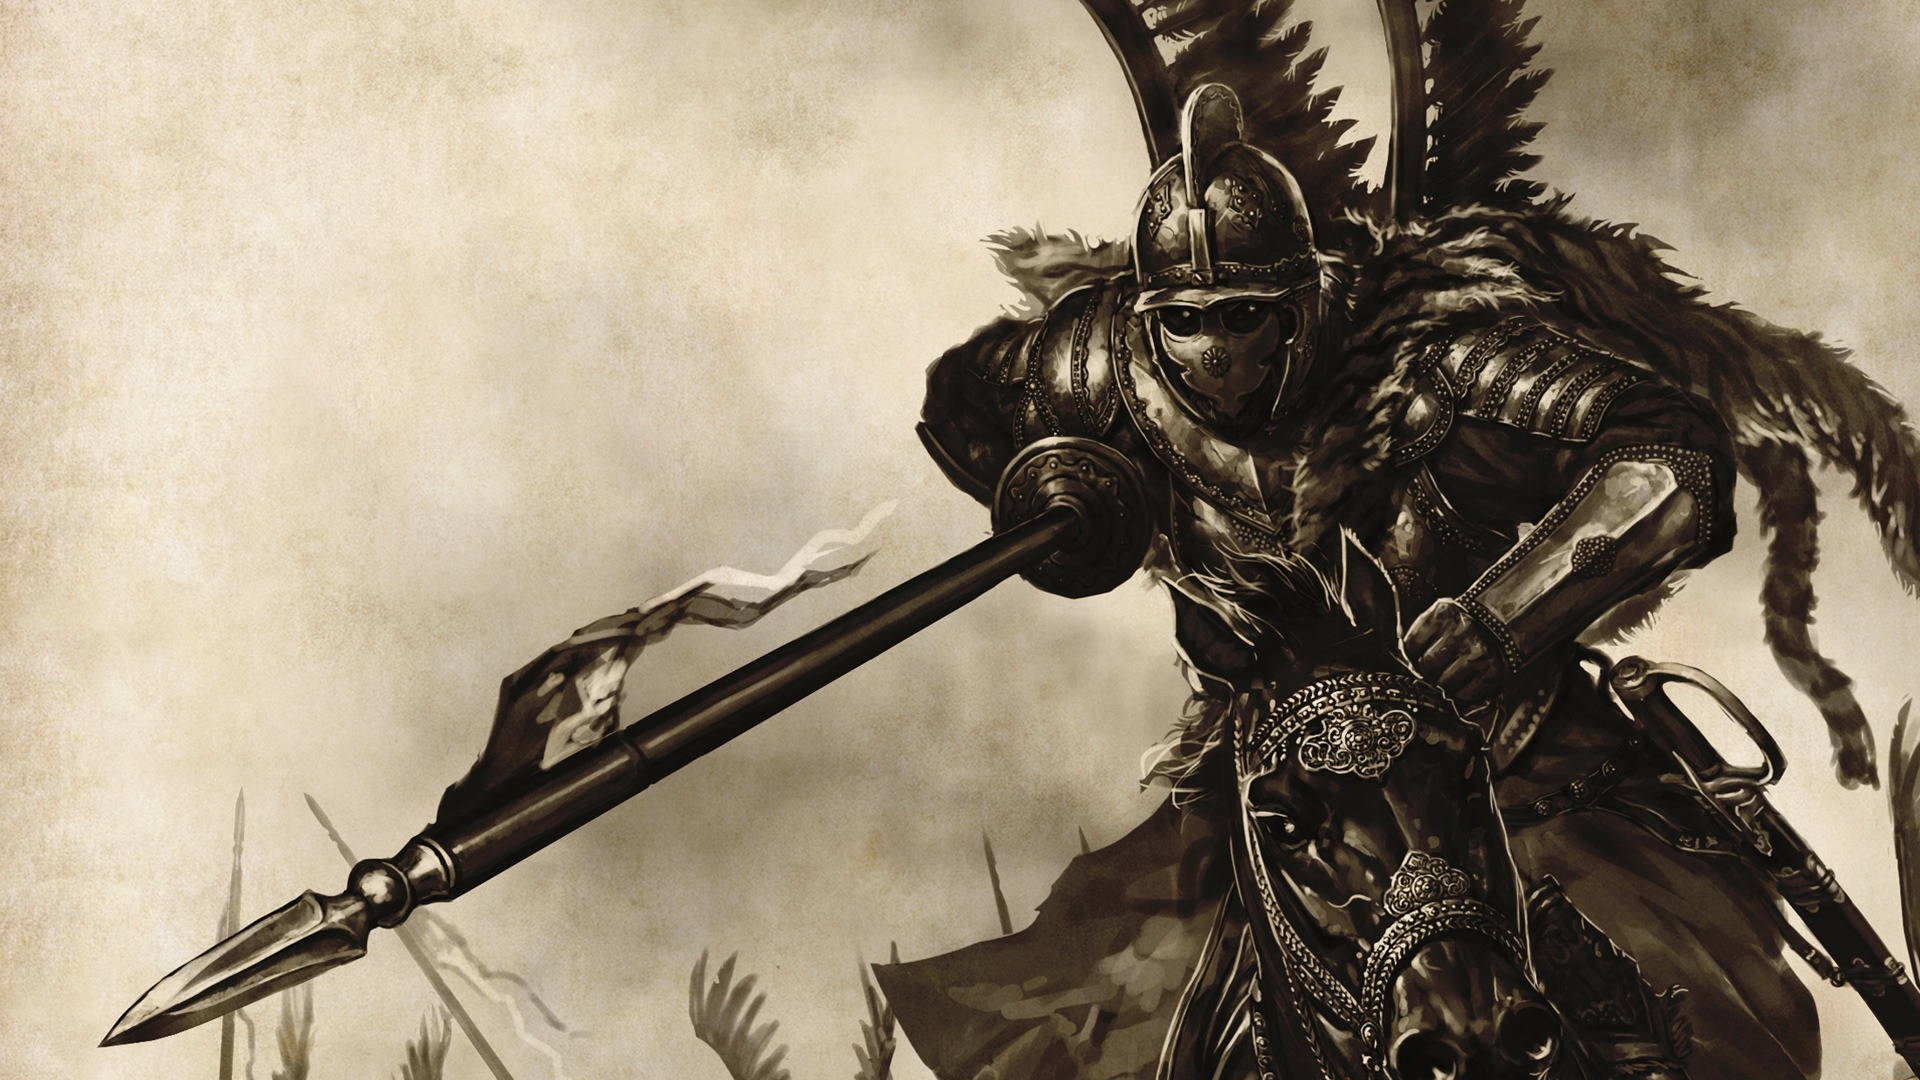 MOUNT AND BLADE fantasy warrior armor weapon g wallpaper background 1920x1080